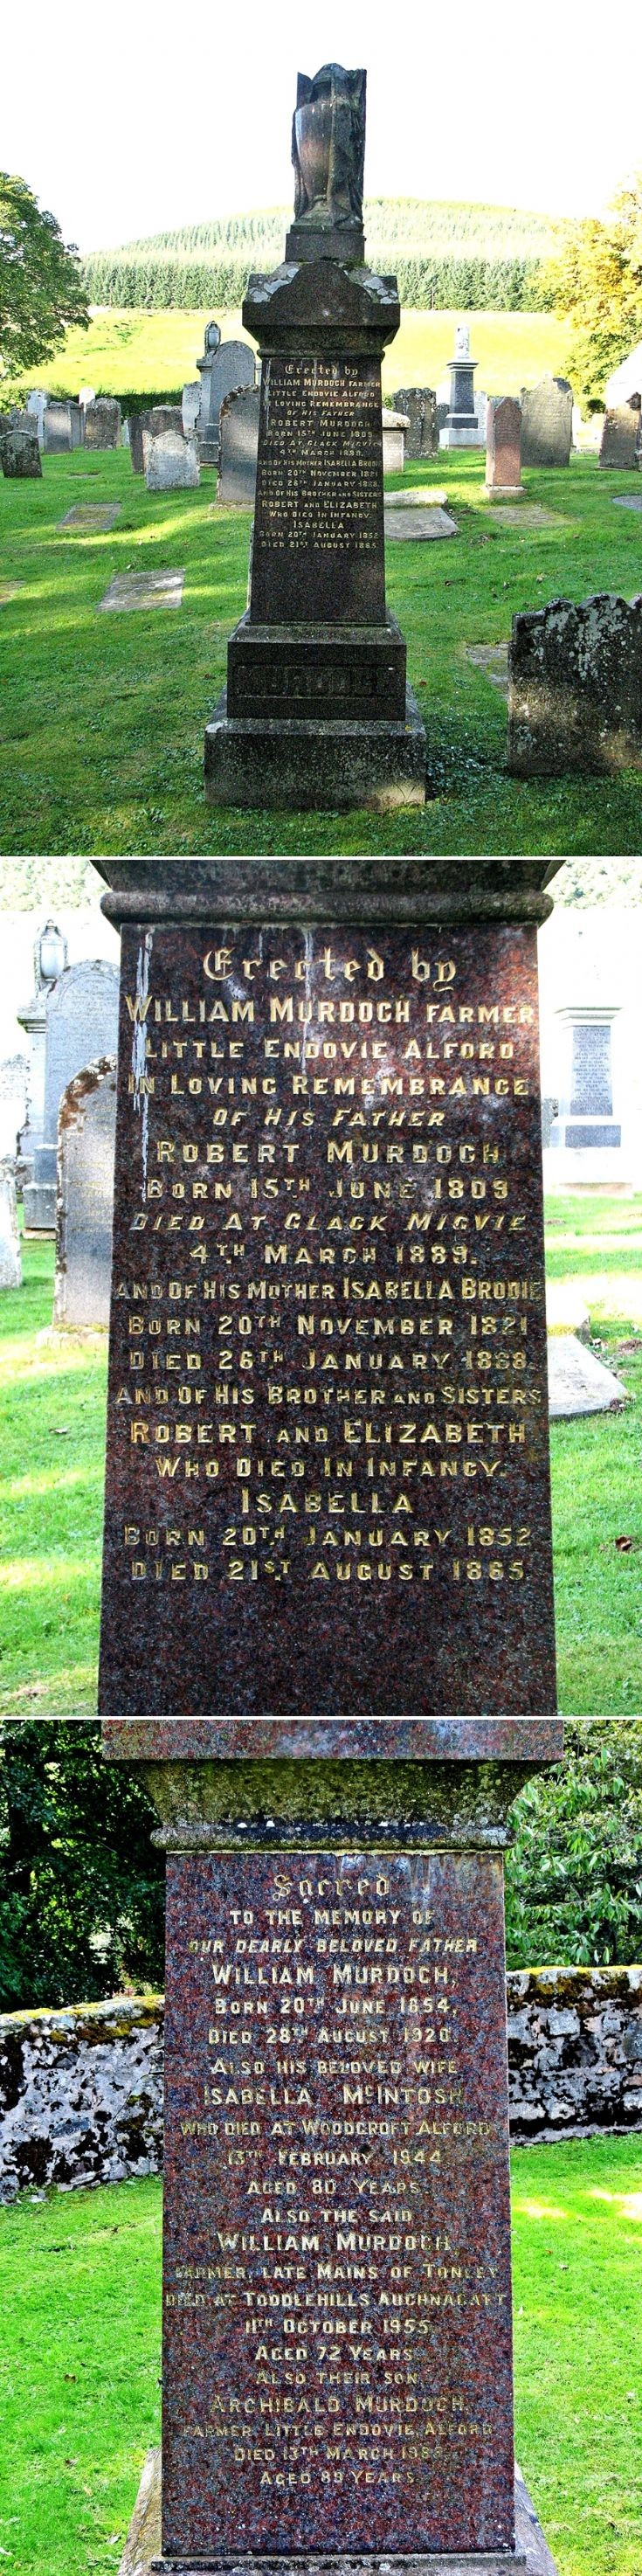 22 Grave No 19 Robert and William Murdoch